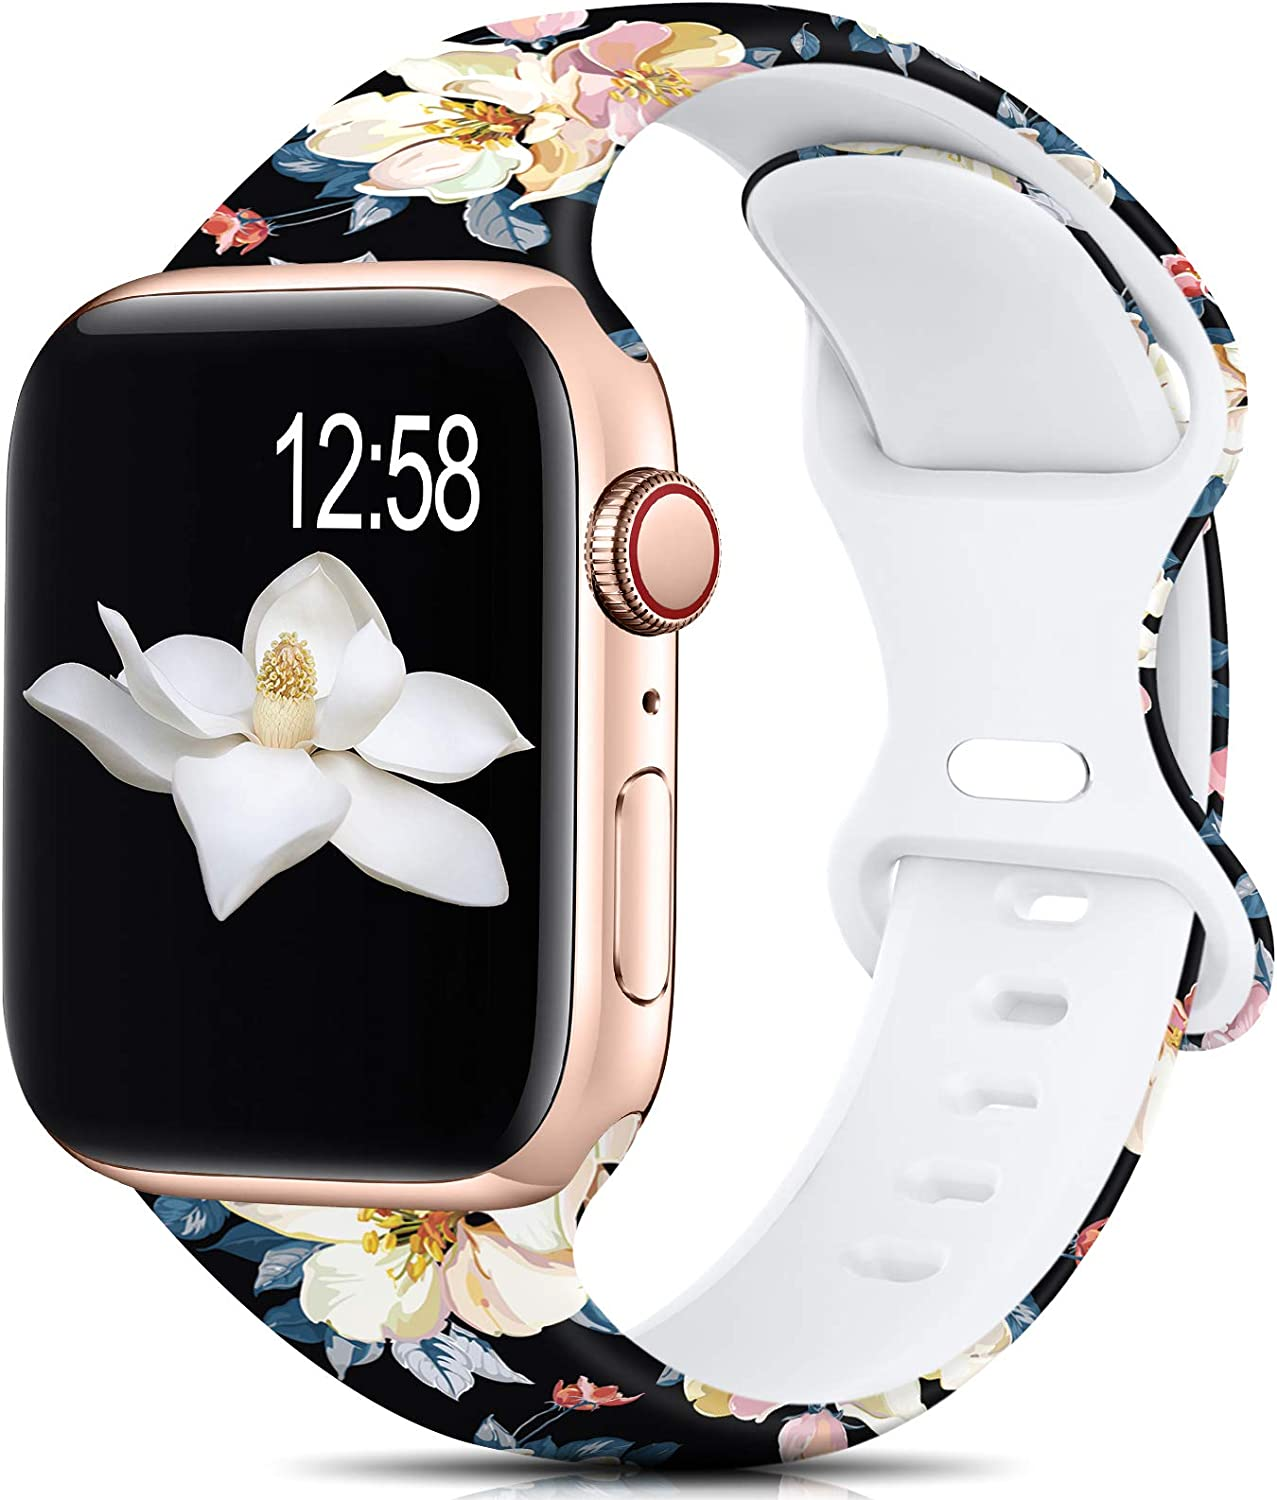 Sport Band Compatible with Apple Watch Bands 38mm 40mm Size for Women Men,Floral Silicone Printed Fadeless Pattern Bands for iWatch Series 6 5 4 3 2 SE